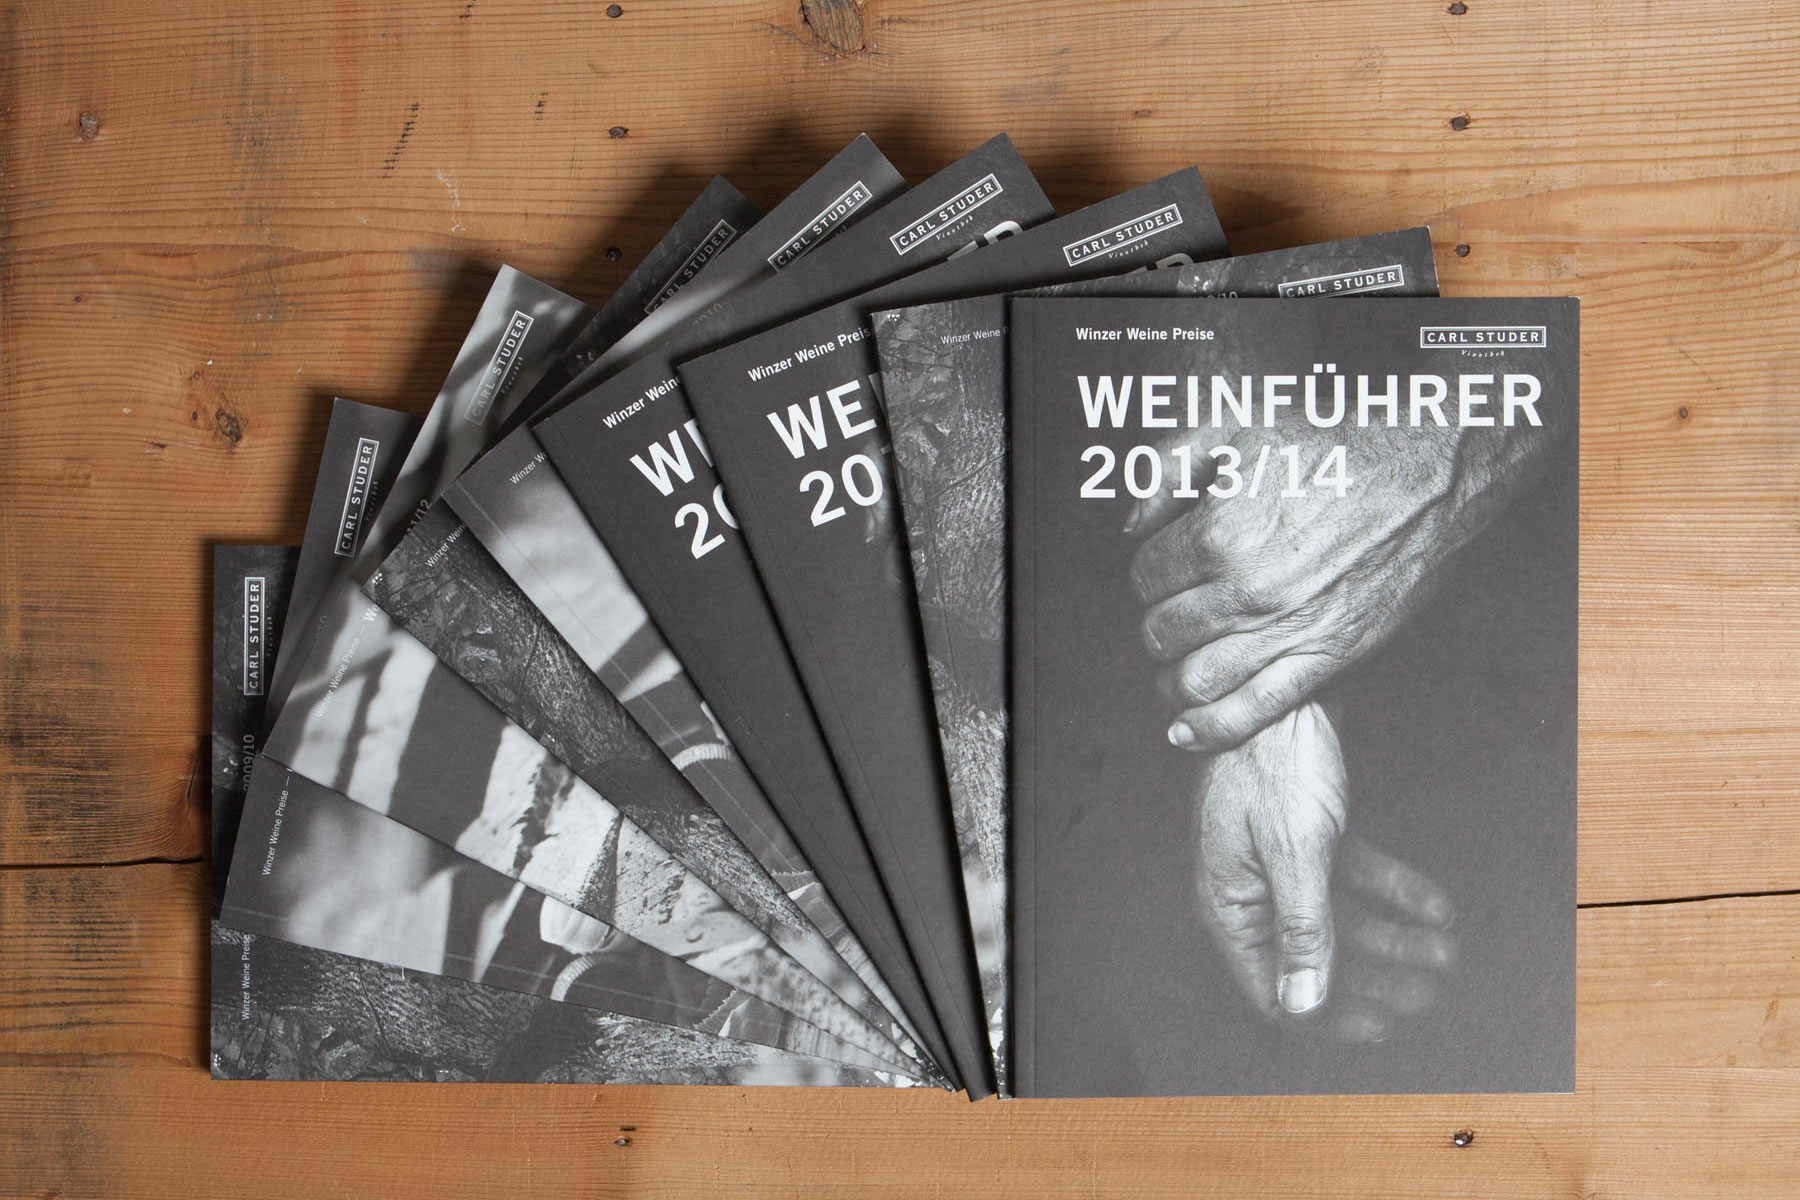 Carl Studer Vinothek Weinführer Publishing Branding Corporate Design